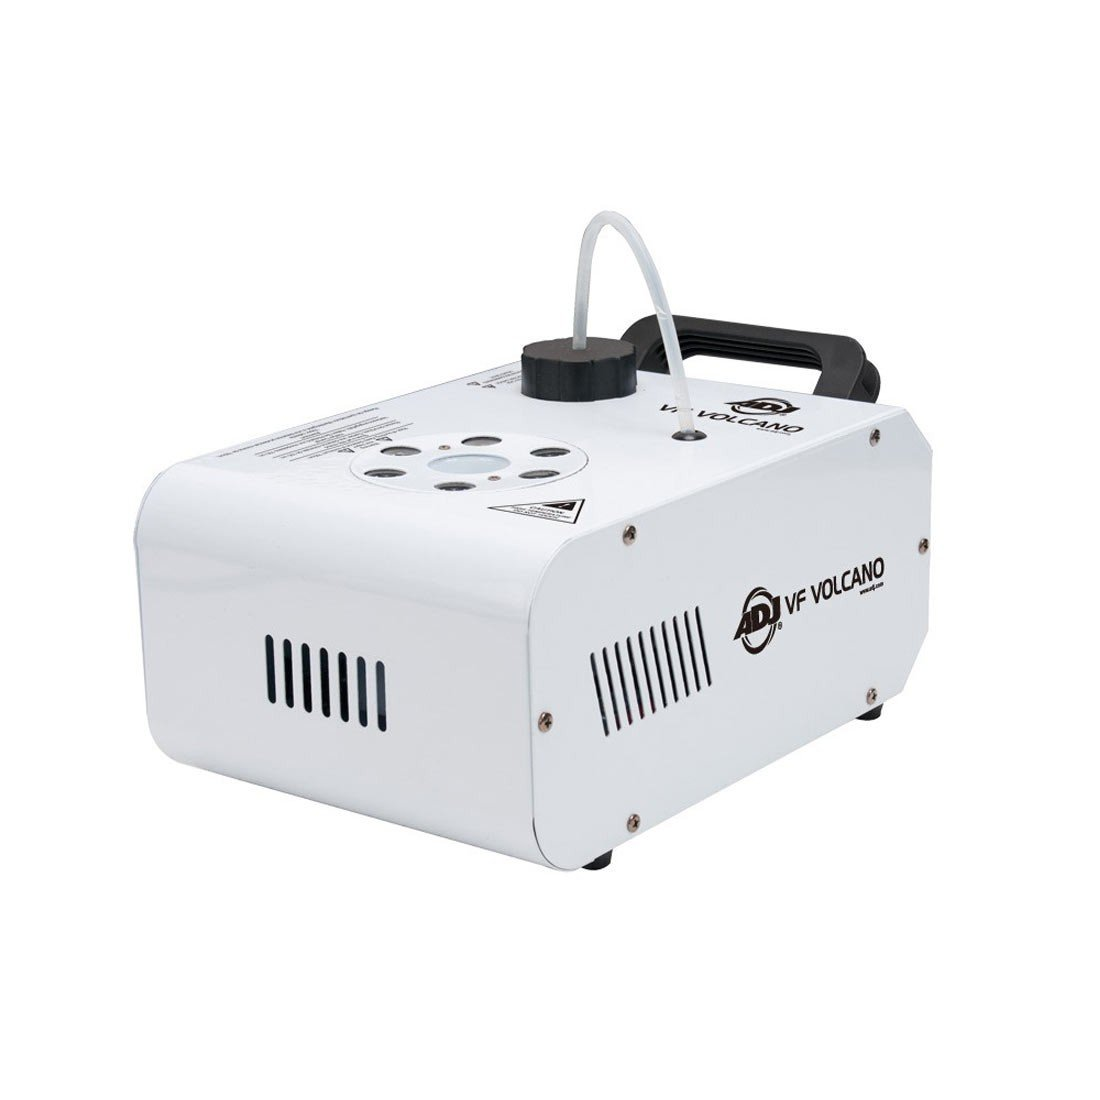 Top 10 Best Fog Machine For Halloween Reviews in 2021 9